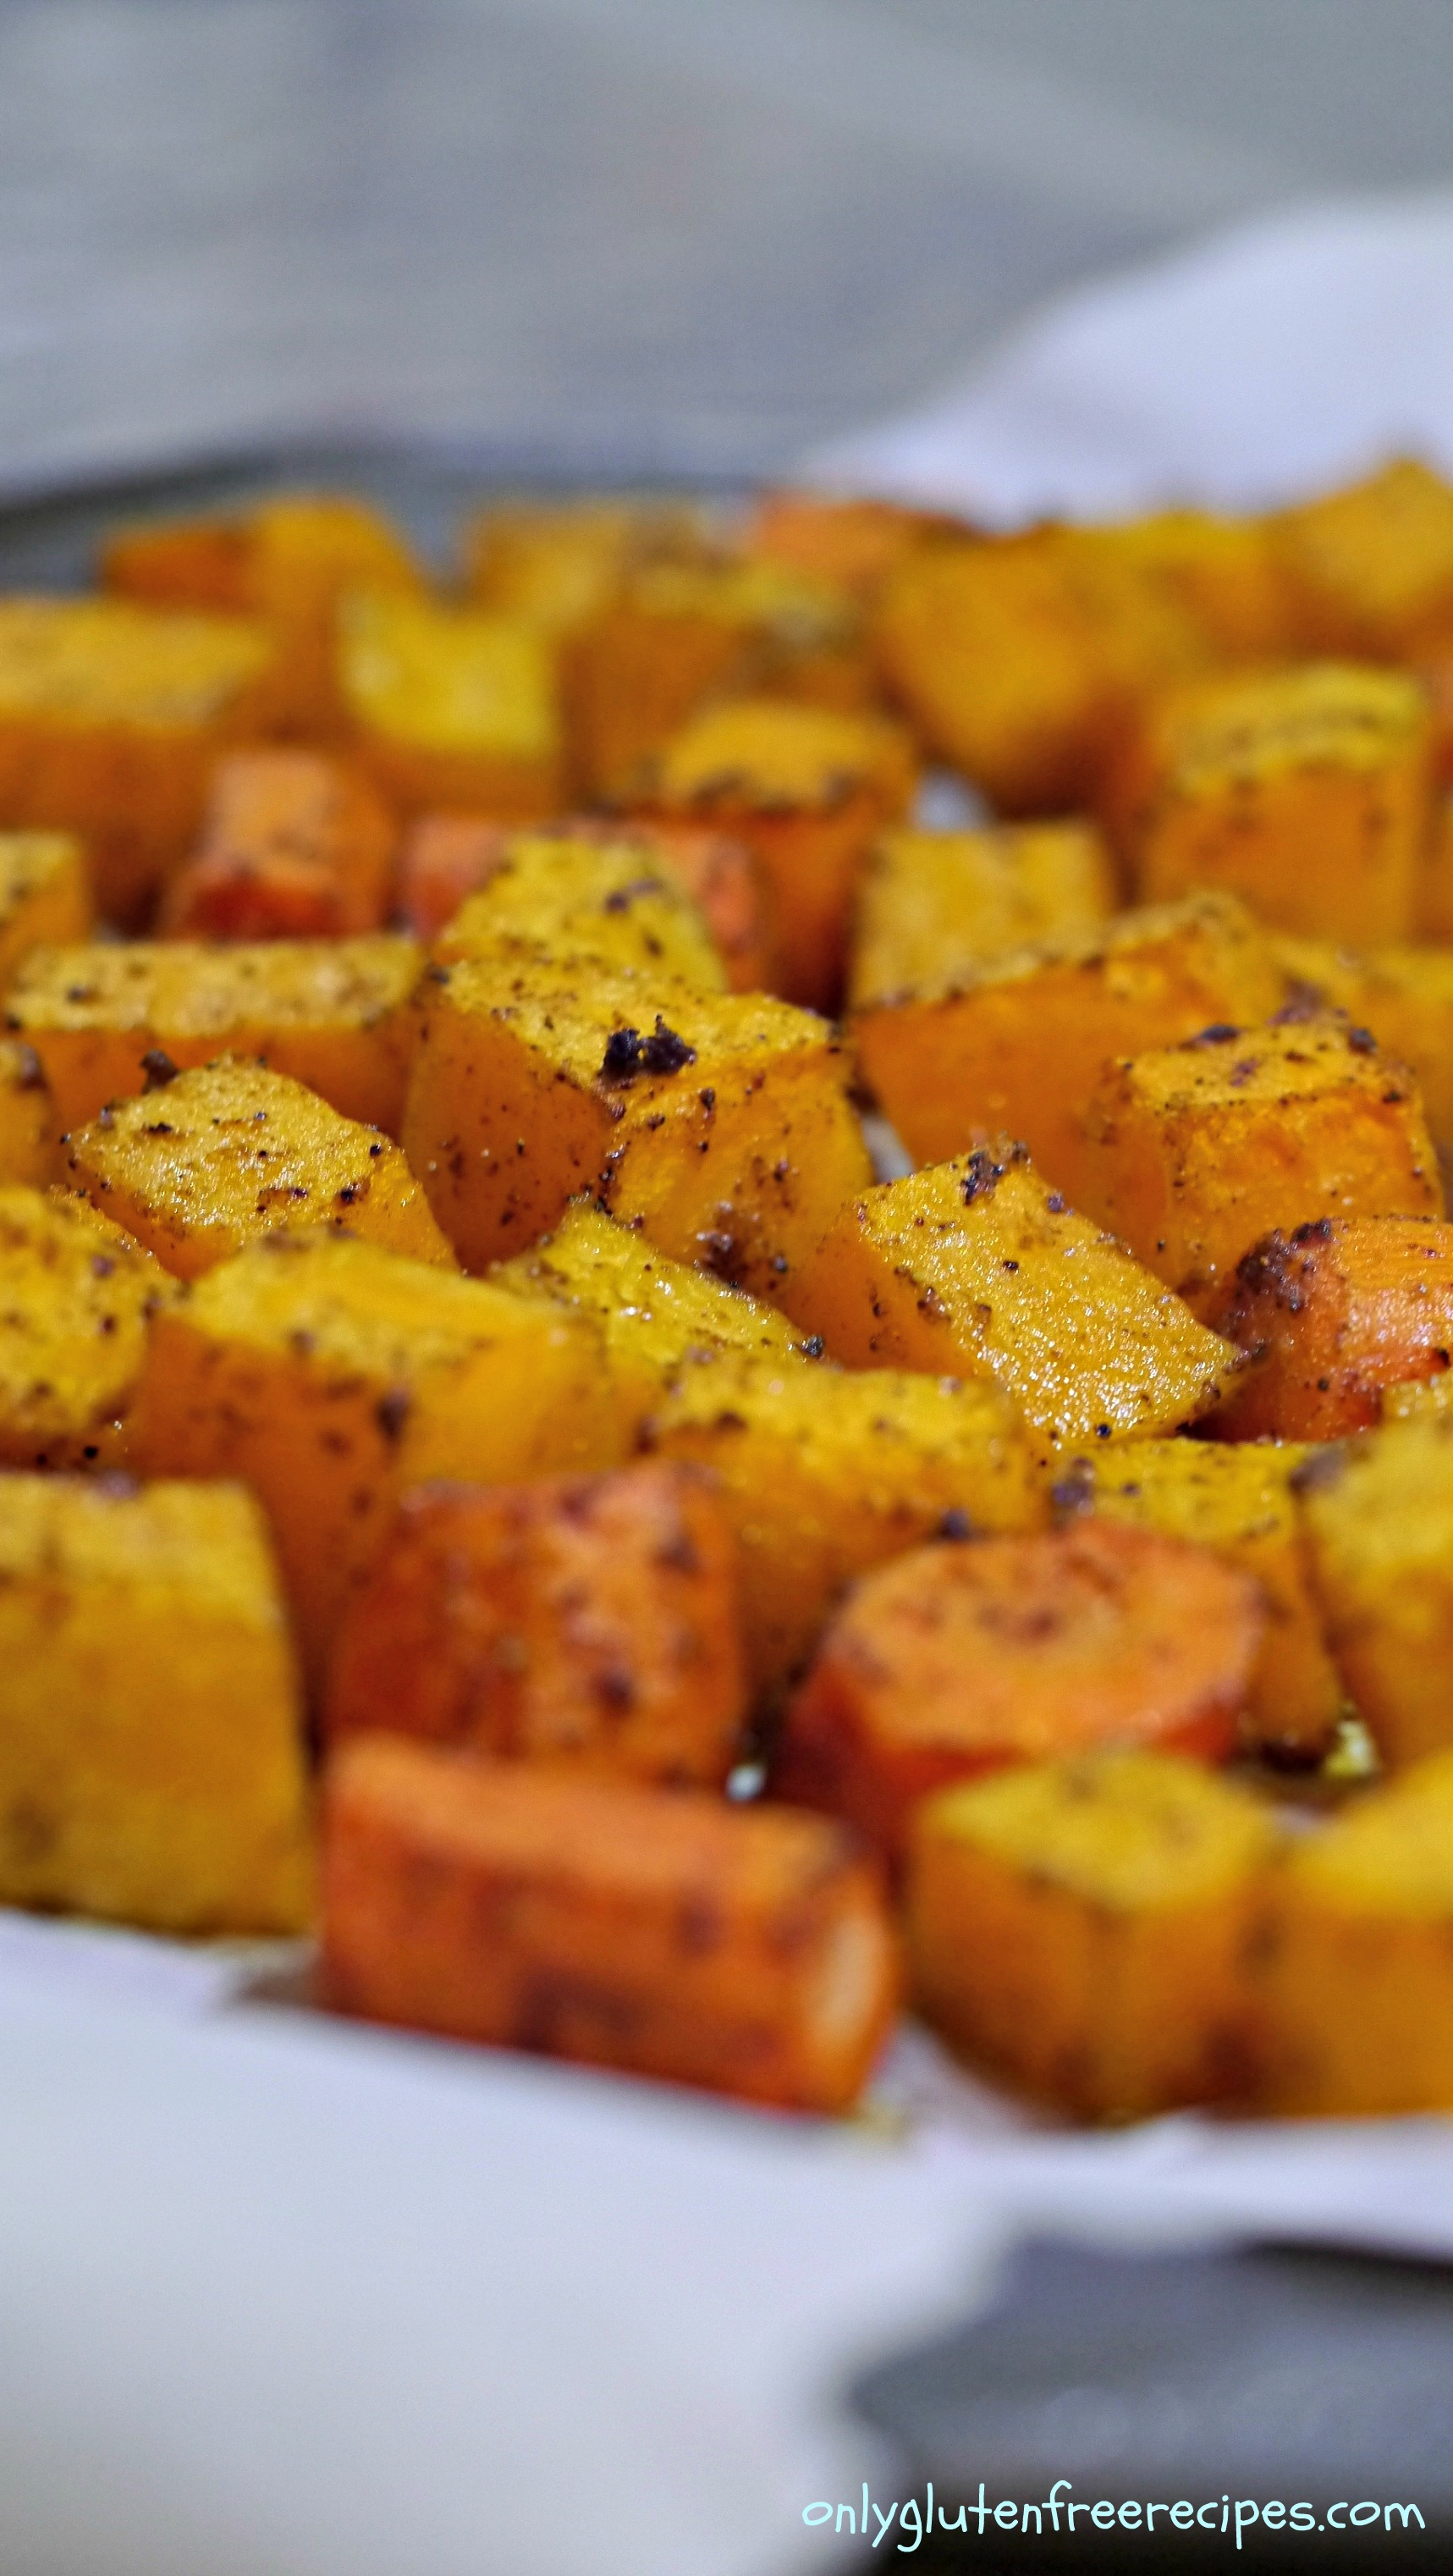 Spiced Squash and Carrots